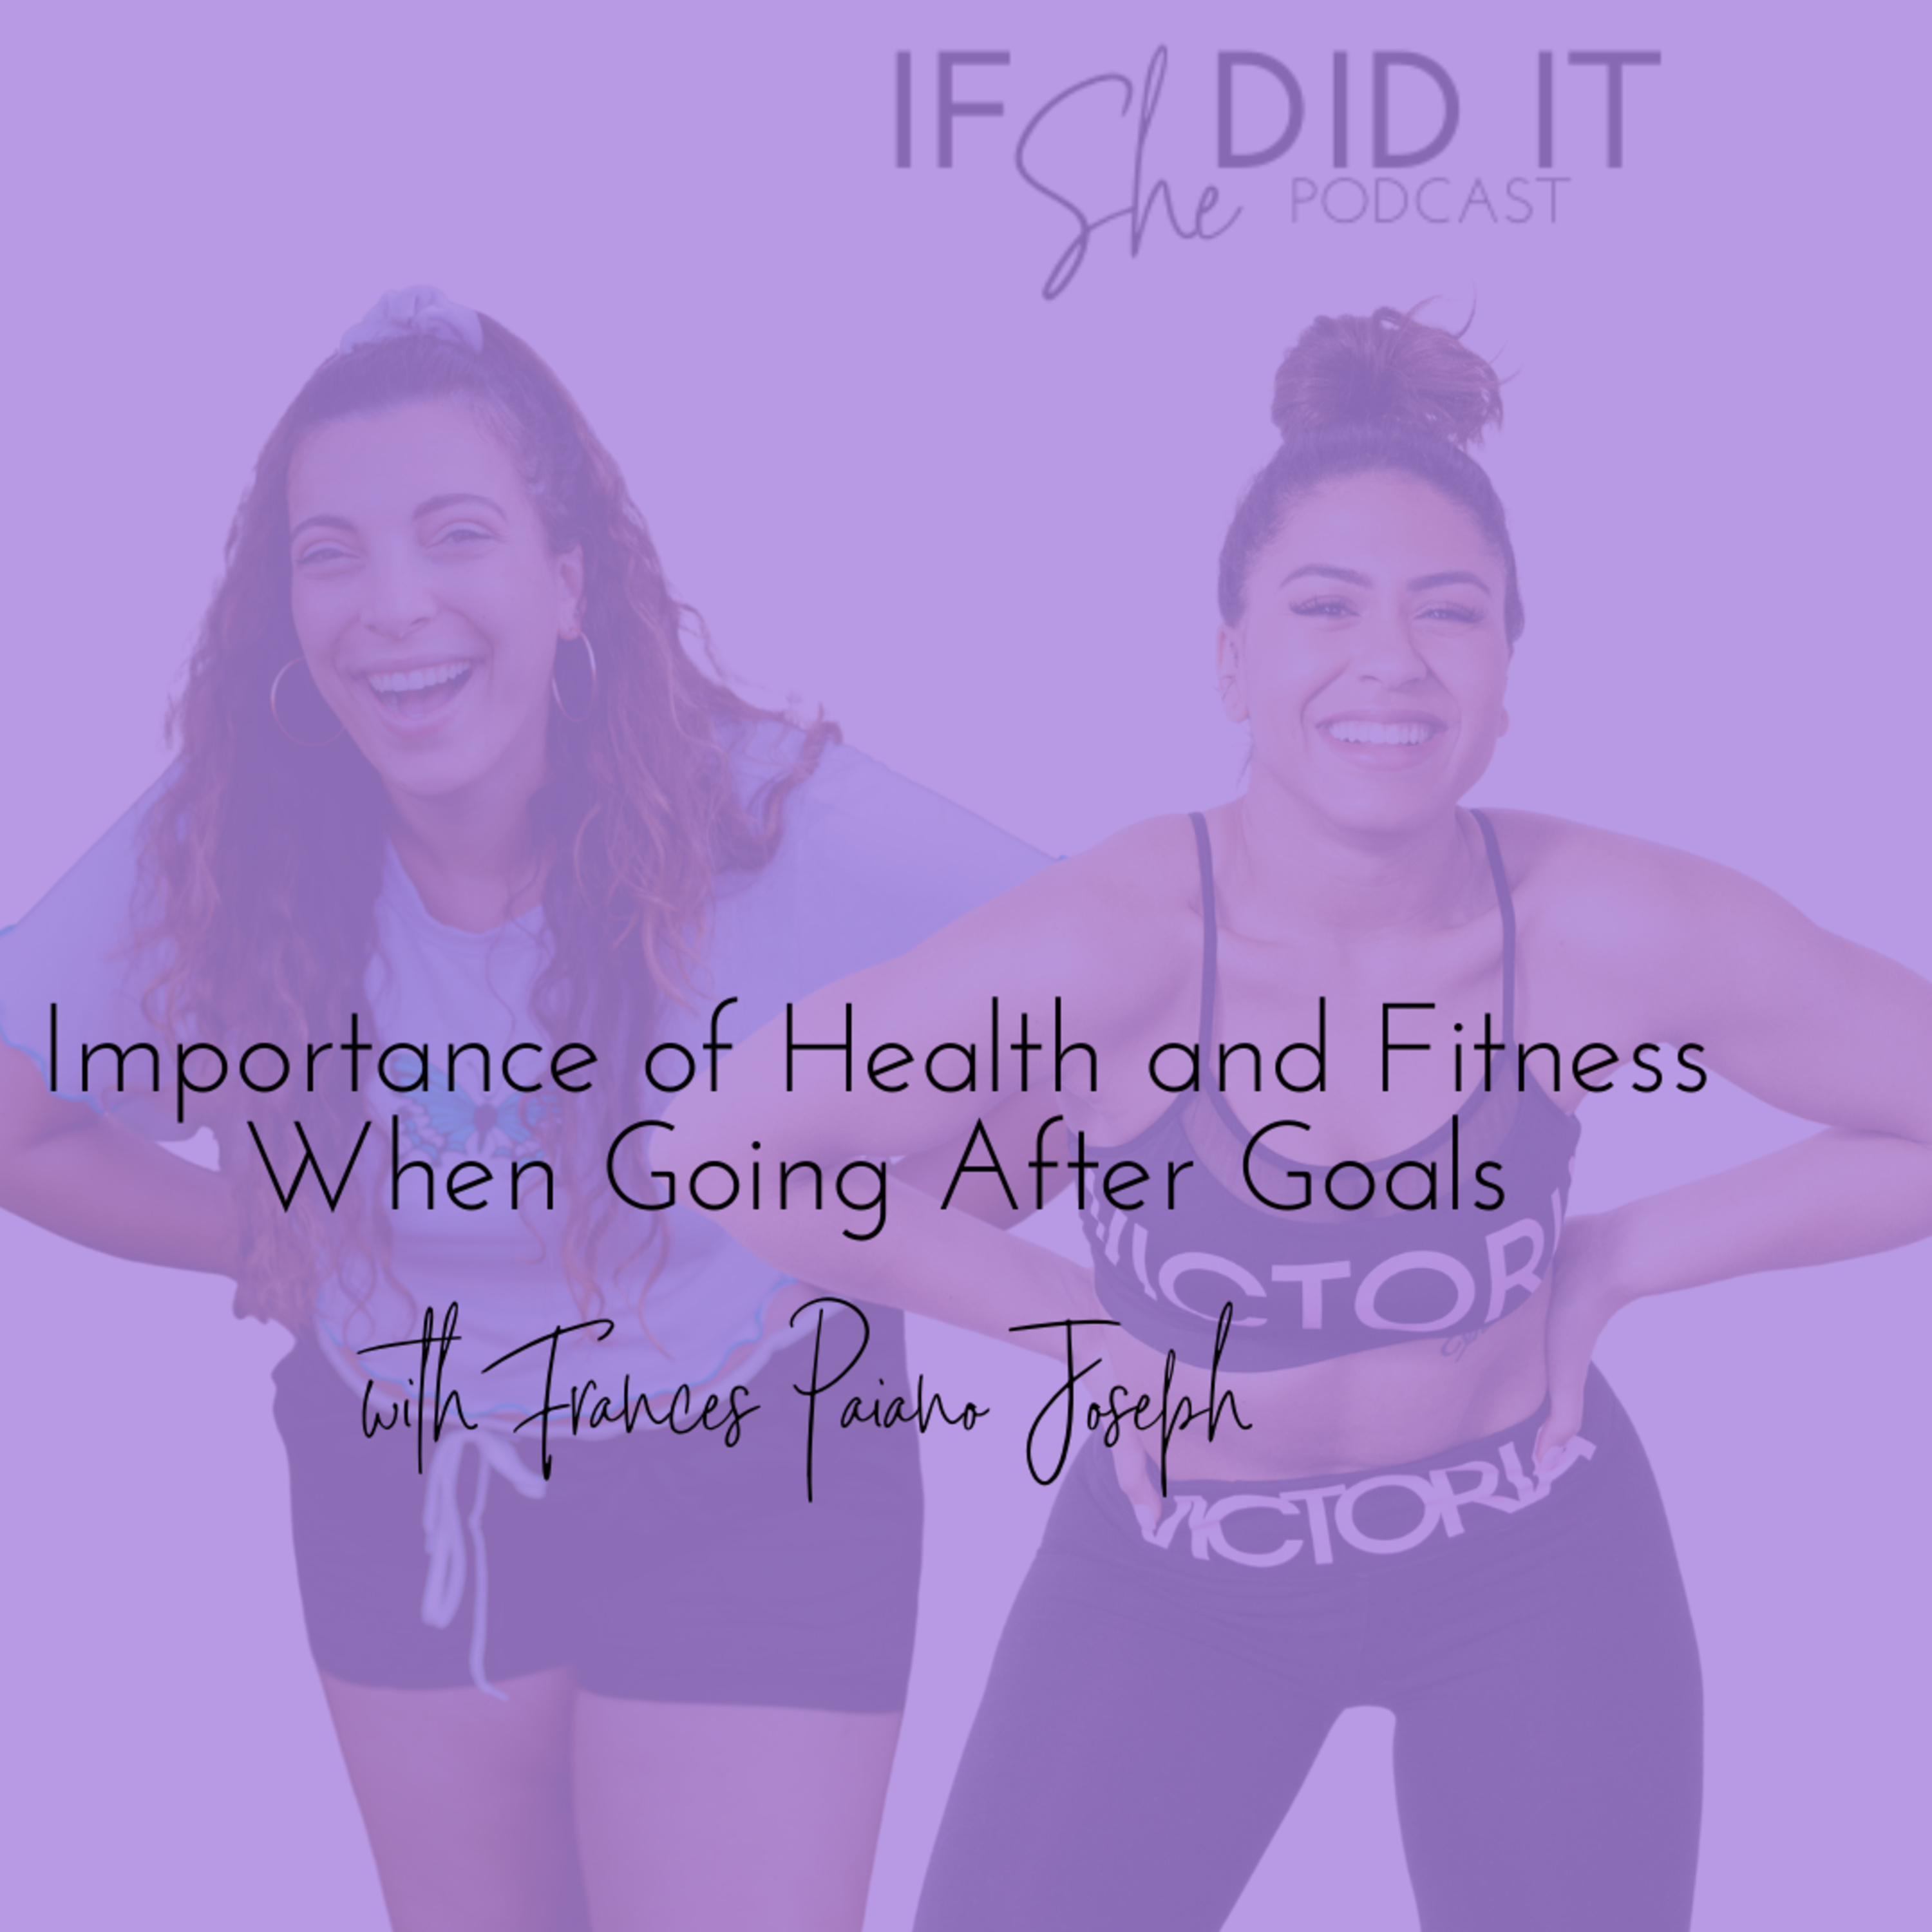 Importance of Health and Fitness When Going After Goals